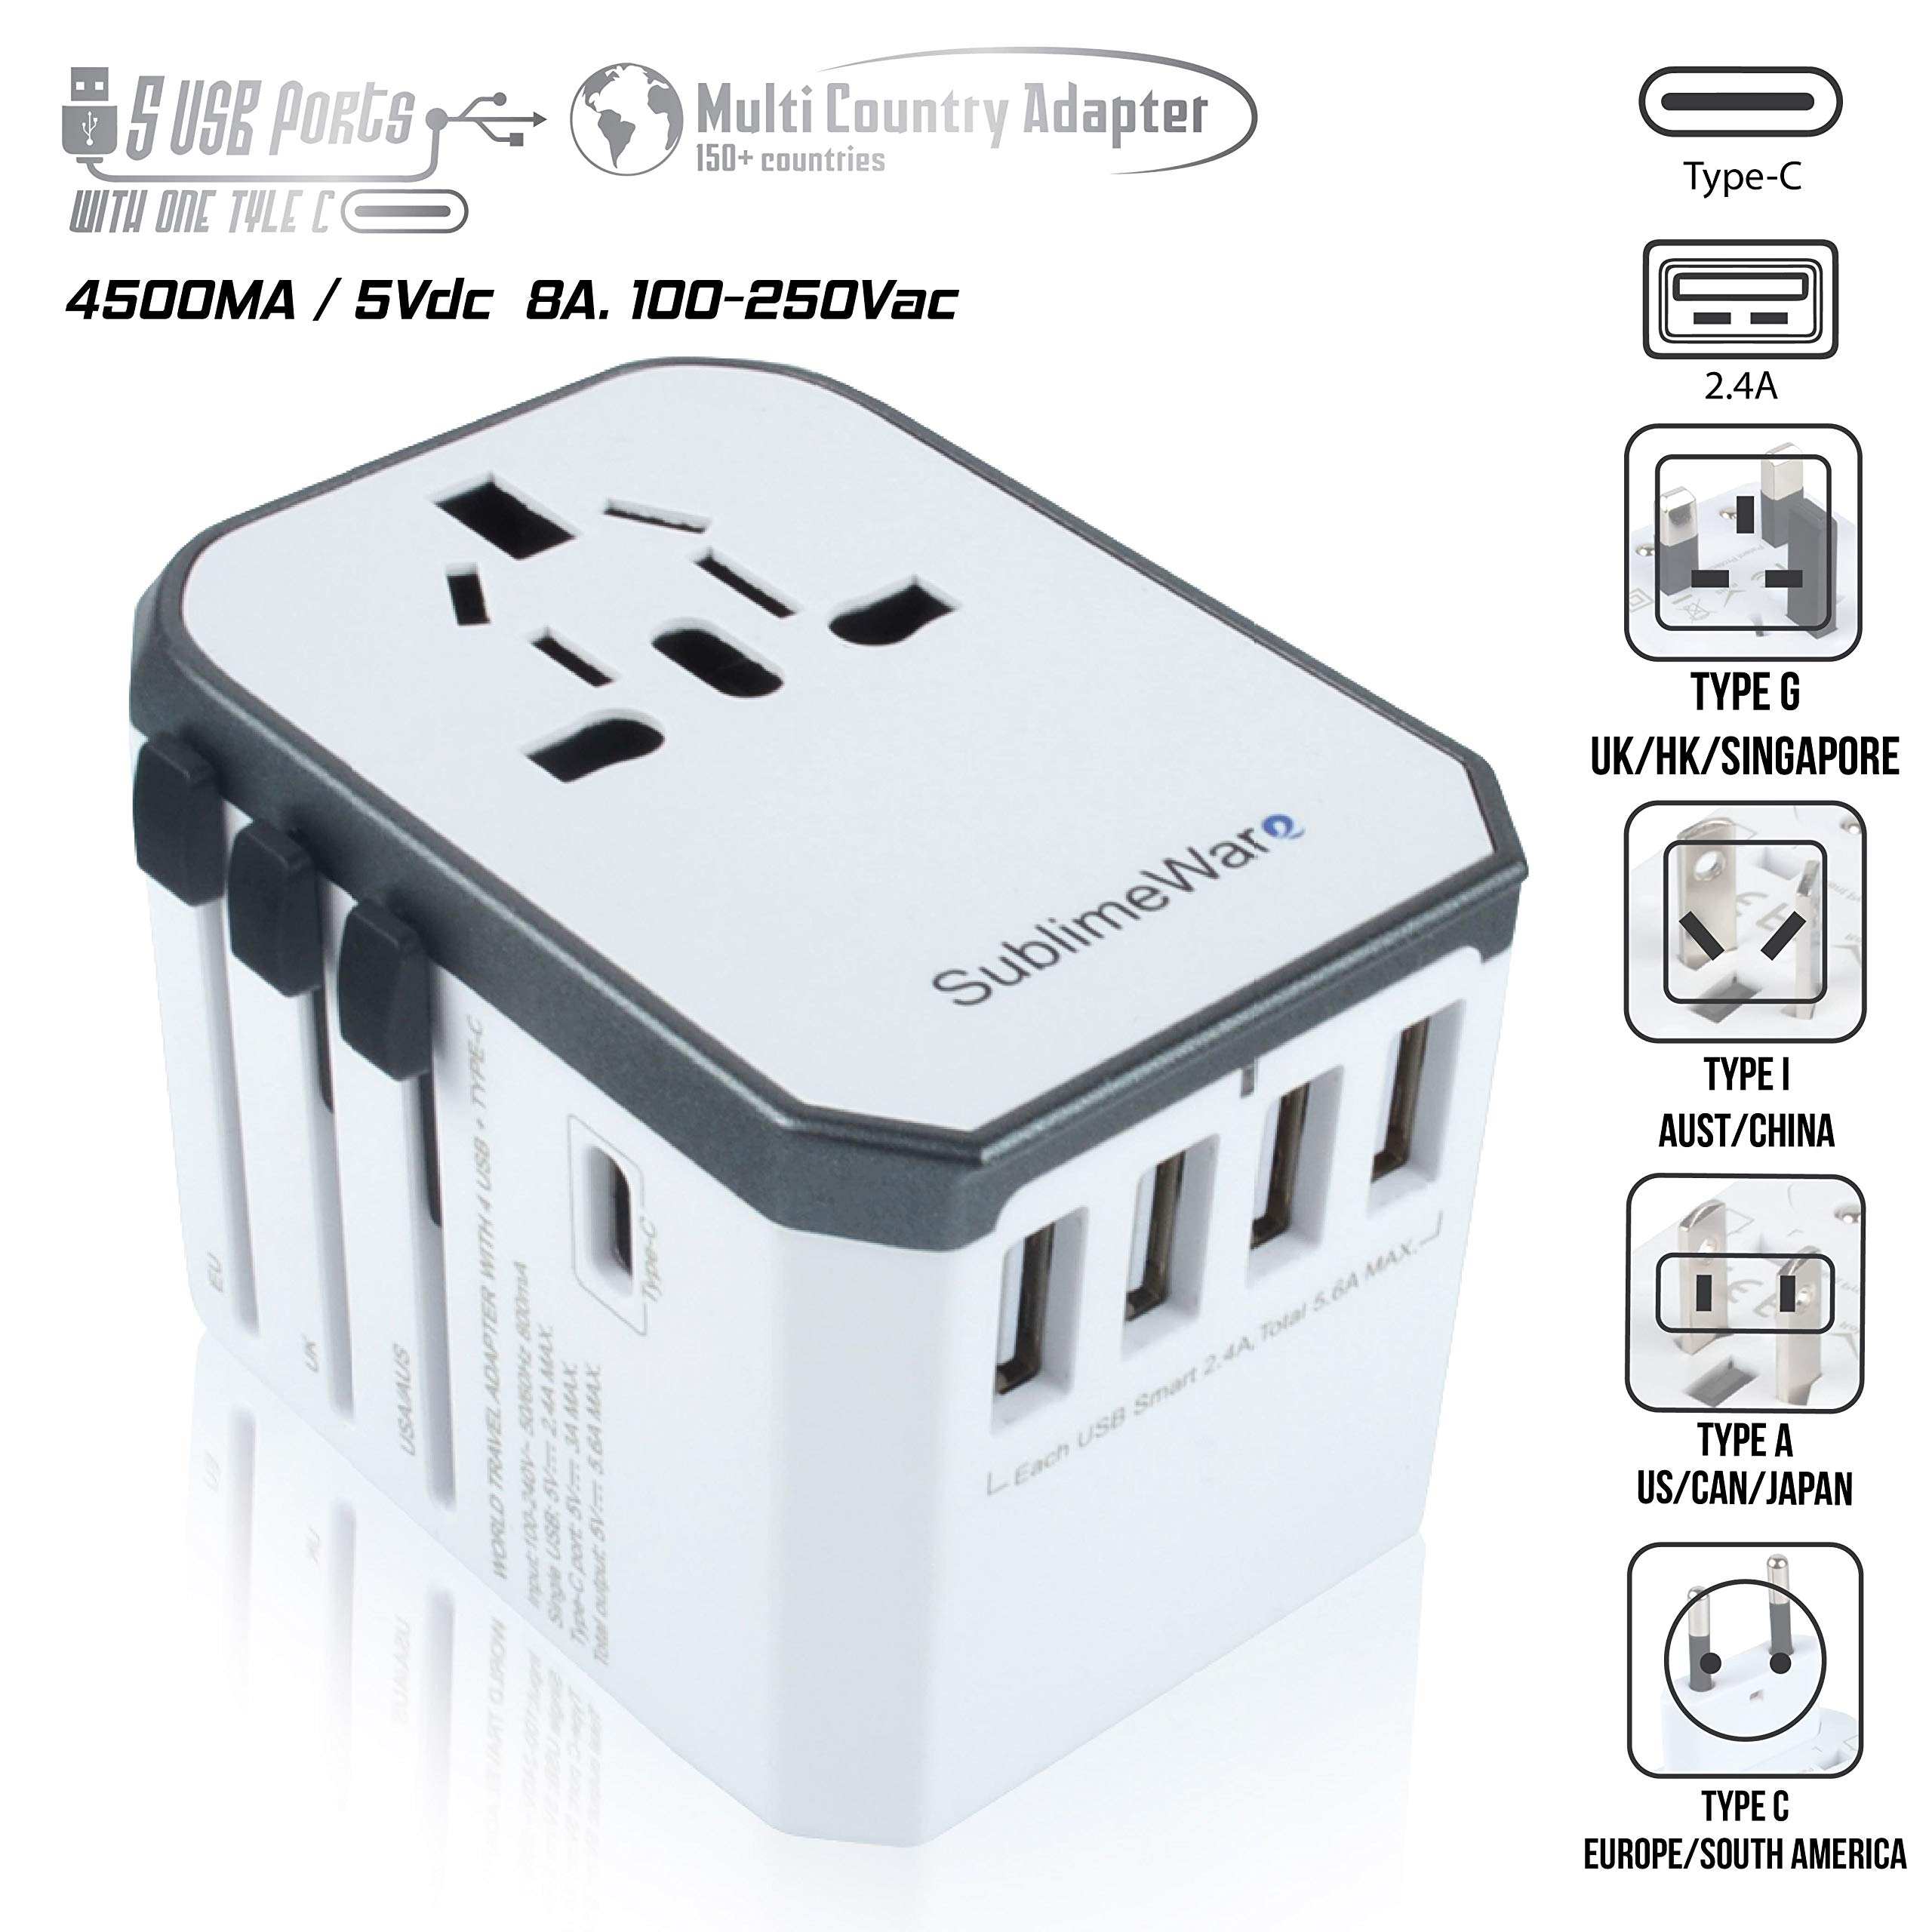 Power Plug Adapter - International Travel (w/5 USB Ports and USB Type C)- Work 150+ Countries - 220 Volt Adapter - Travel Adapter - Type C A G I A/C - UK Japan China EU Europe European